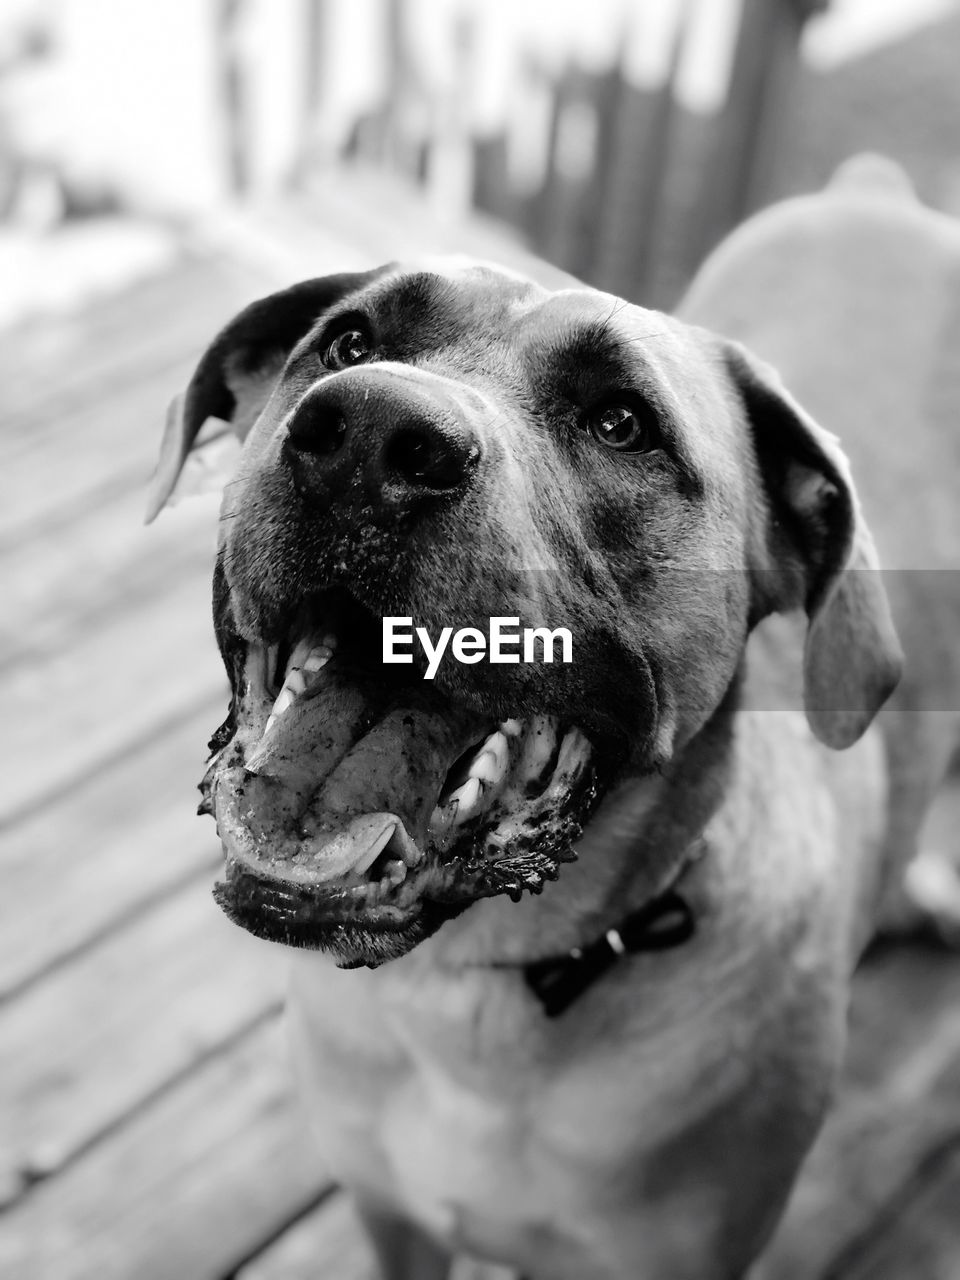 canine, dog, one animal, pets, domestic, domestic animals, mammal, vertebrate, close-up, focus on foreground, no people, looking, portrait, animal body part, mouth open, mouth, looking at camera, animal mouth, snout